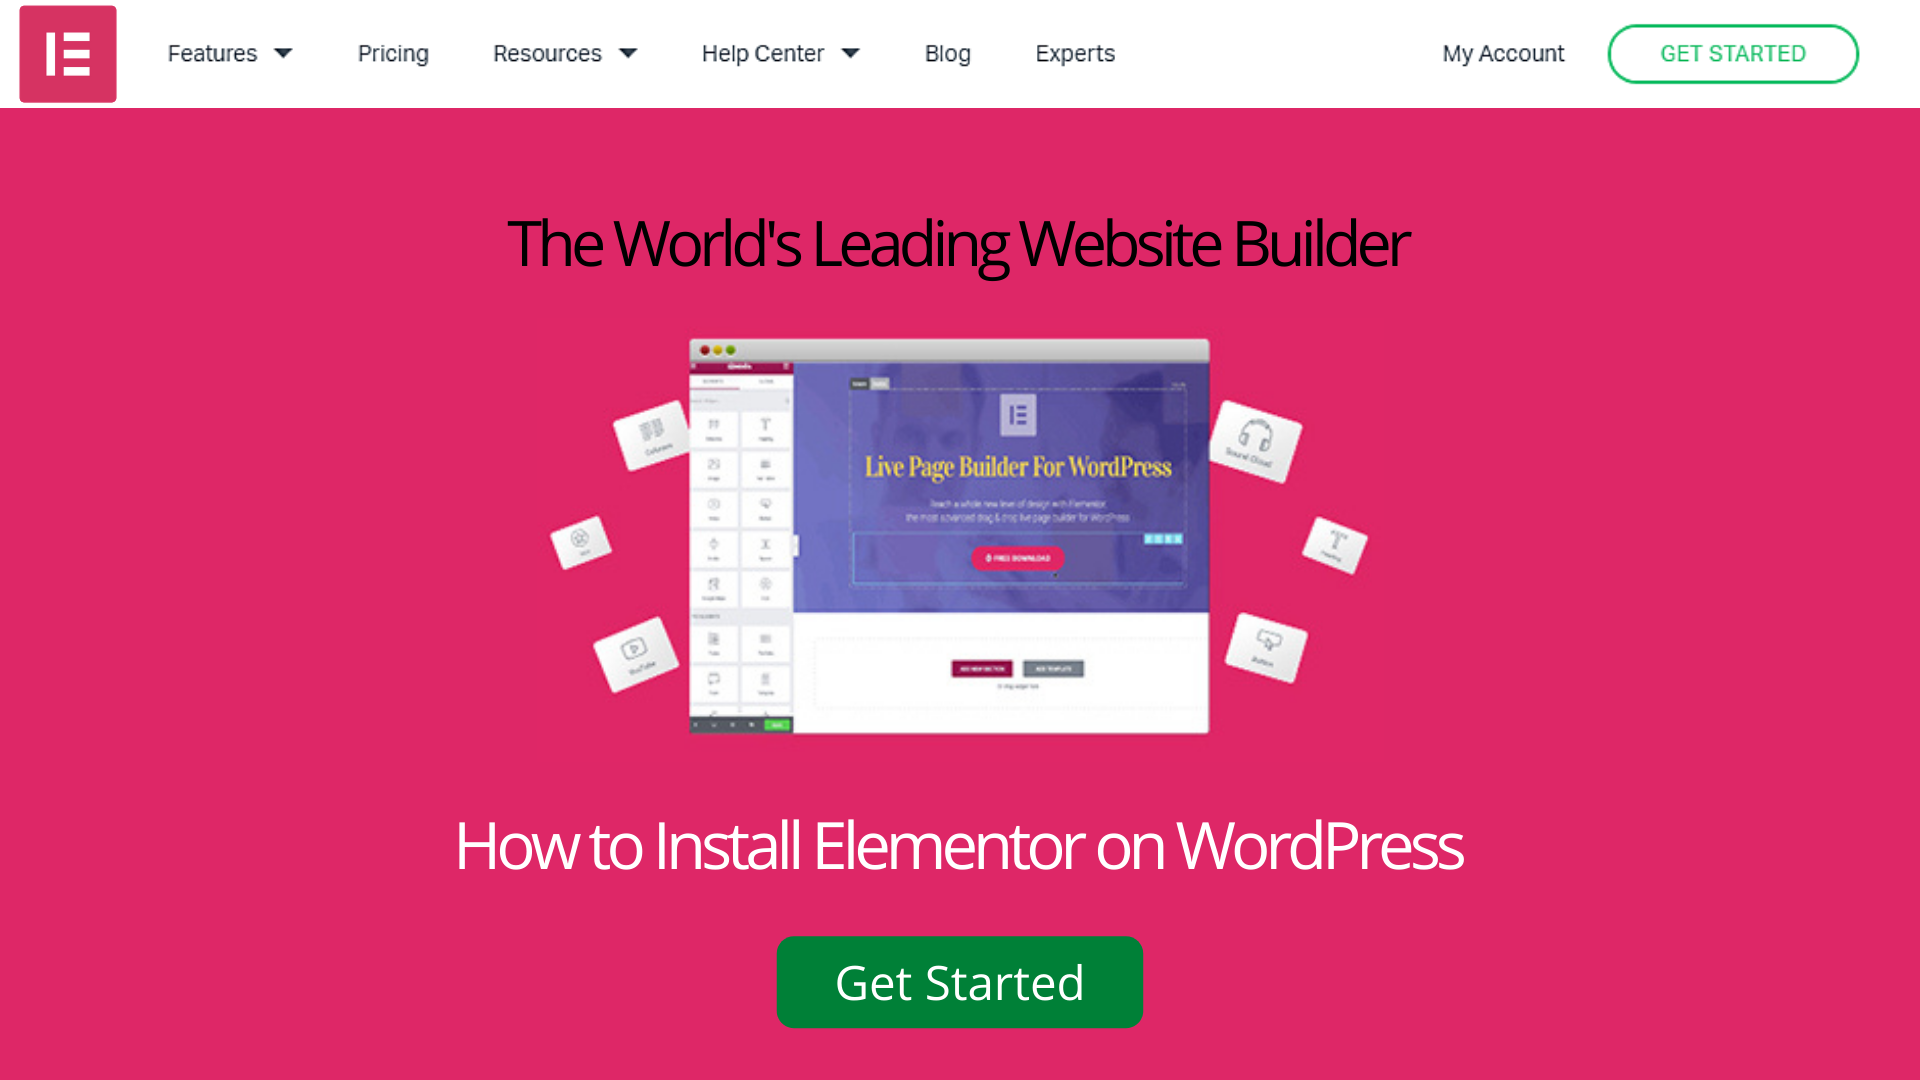 How to Install Elementor on WordPress